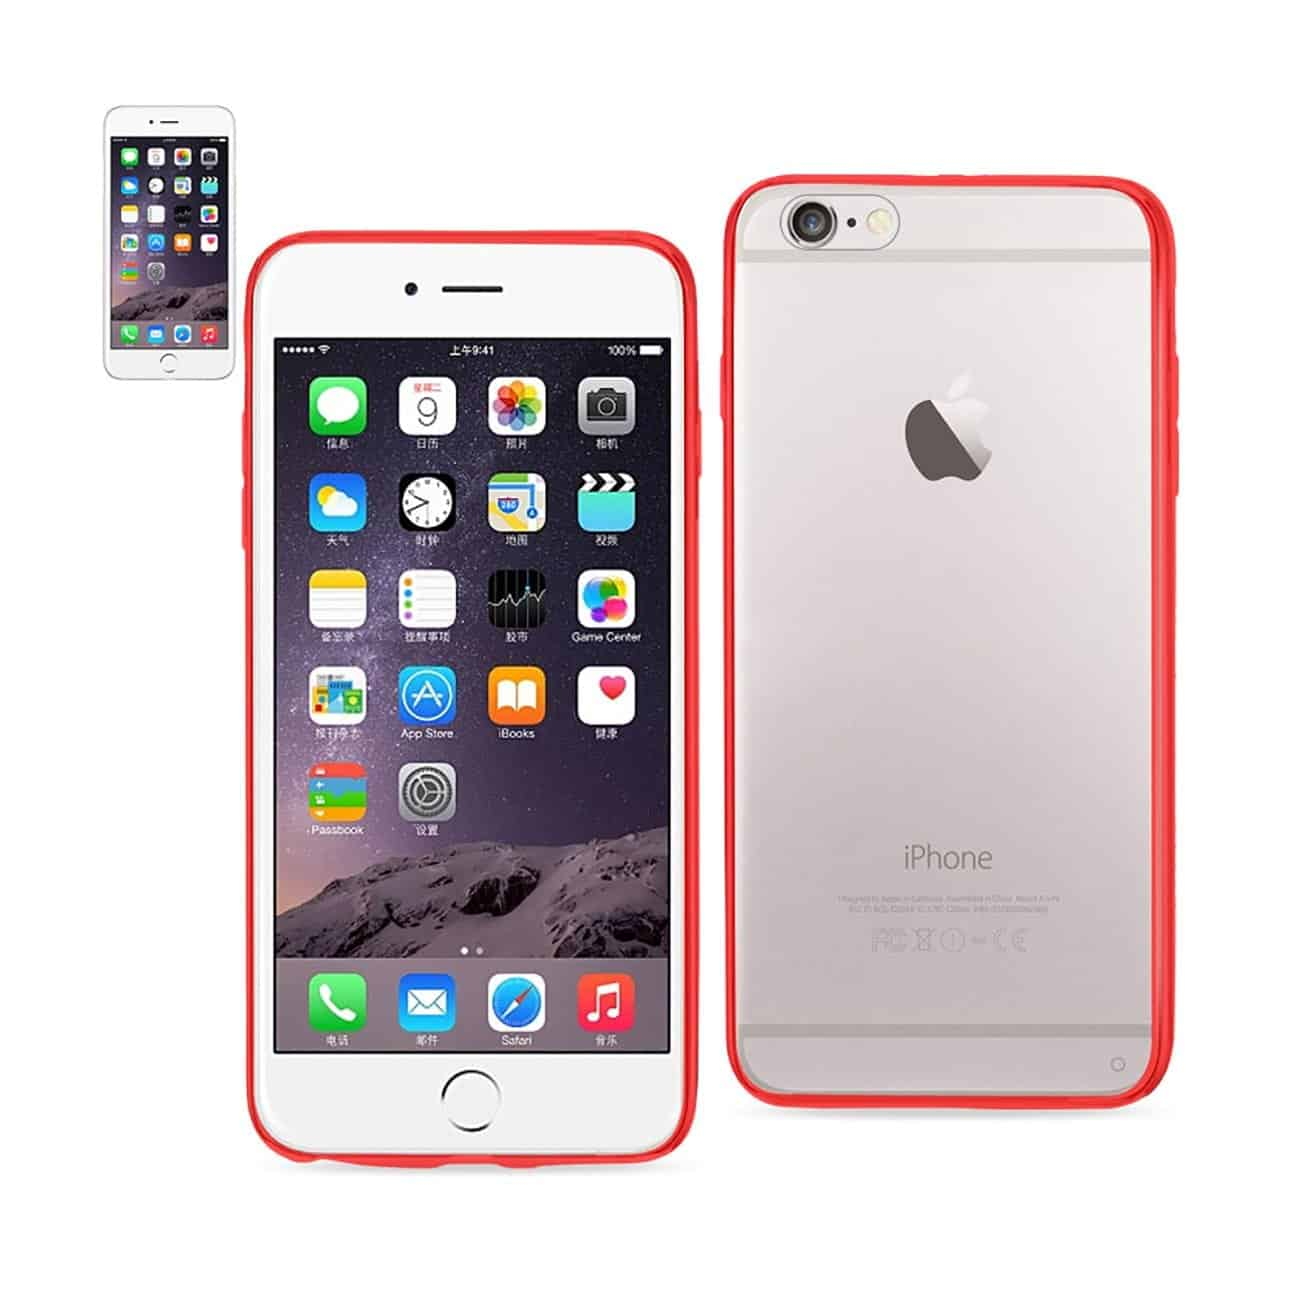 IPHONE 6 PLUS CLEAR BACK FRAME BUMPER CASE IN RED